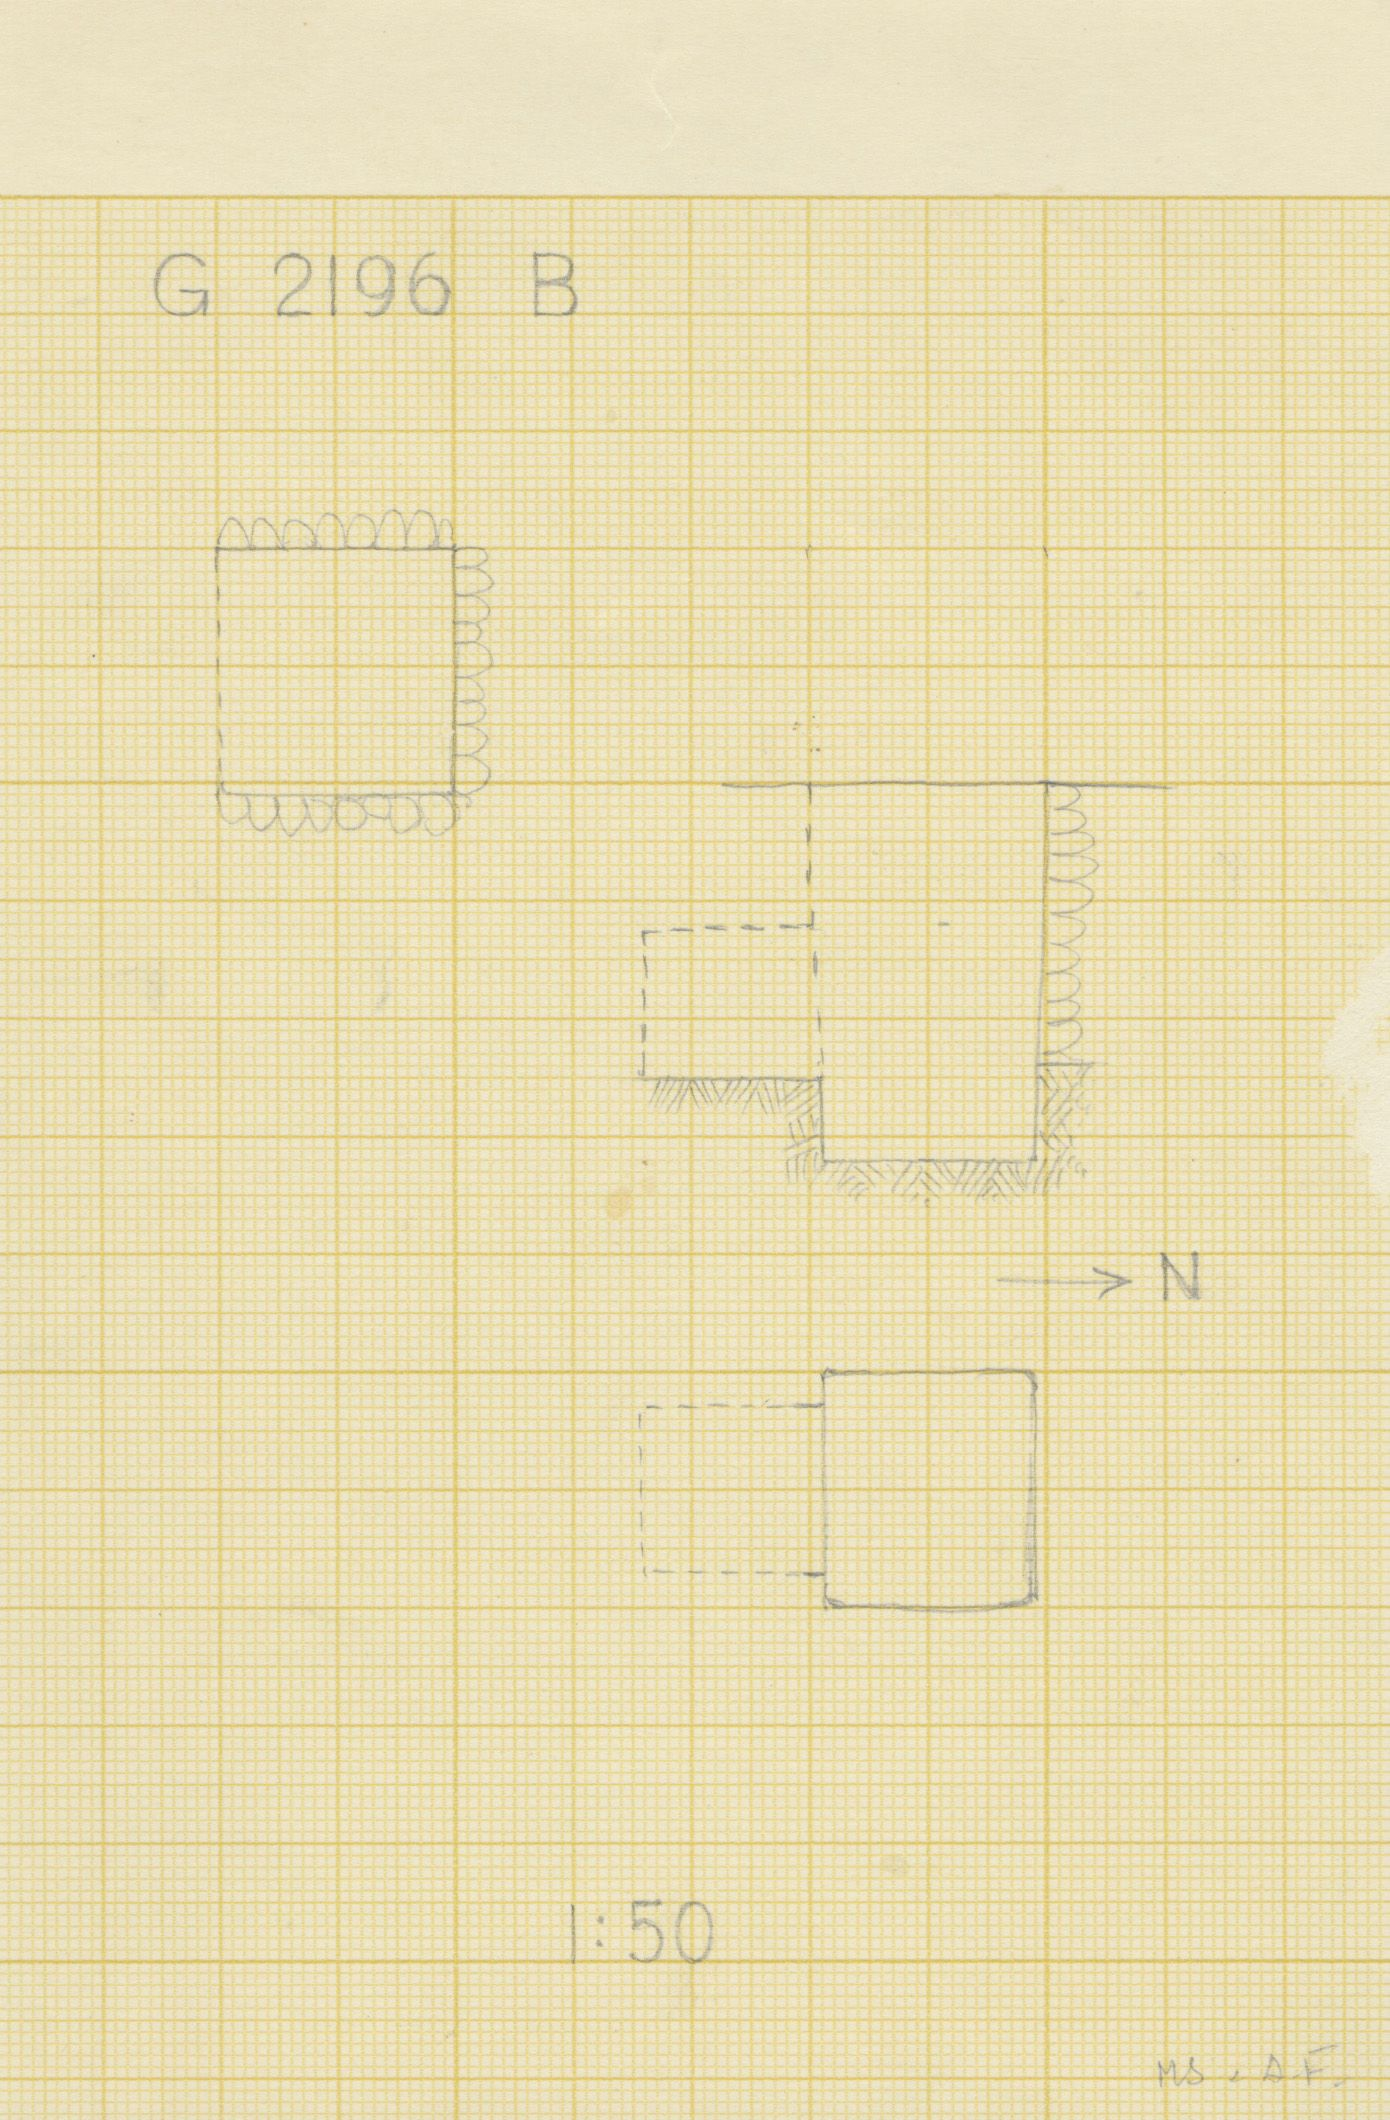 Maps and plans: G 2196, Shaft B